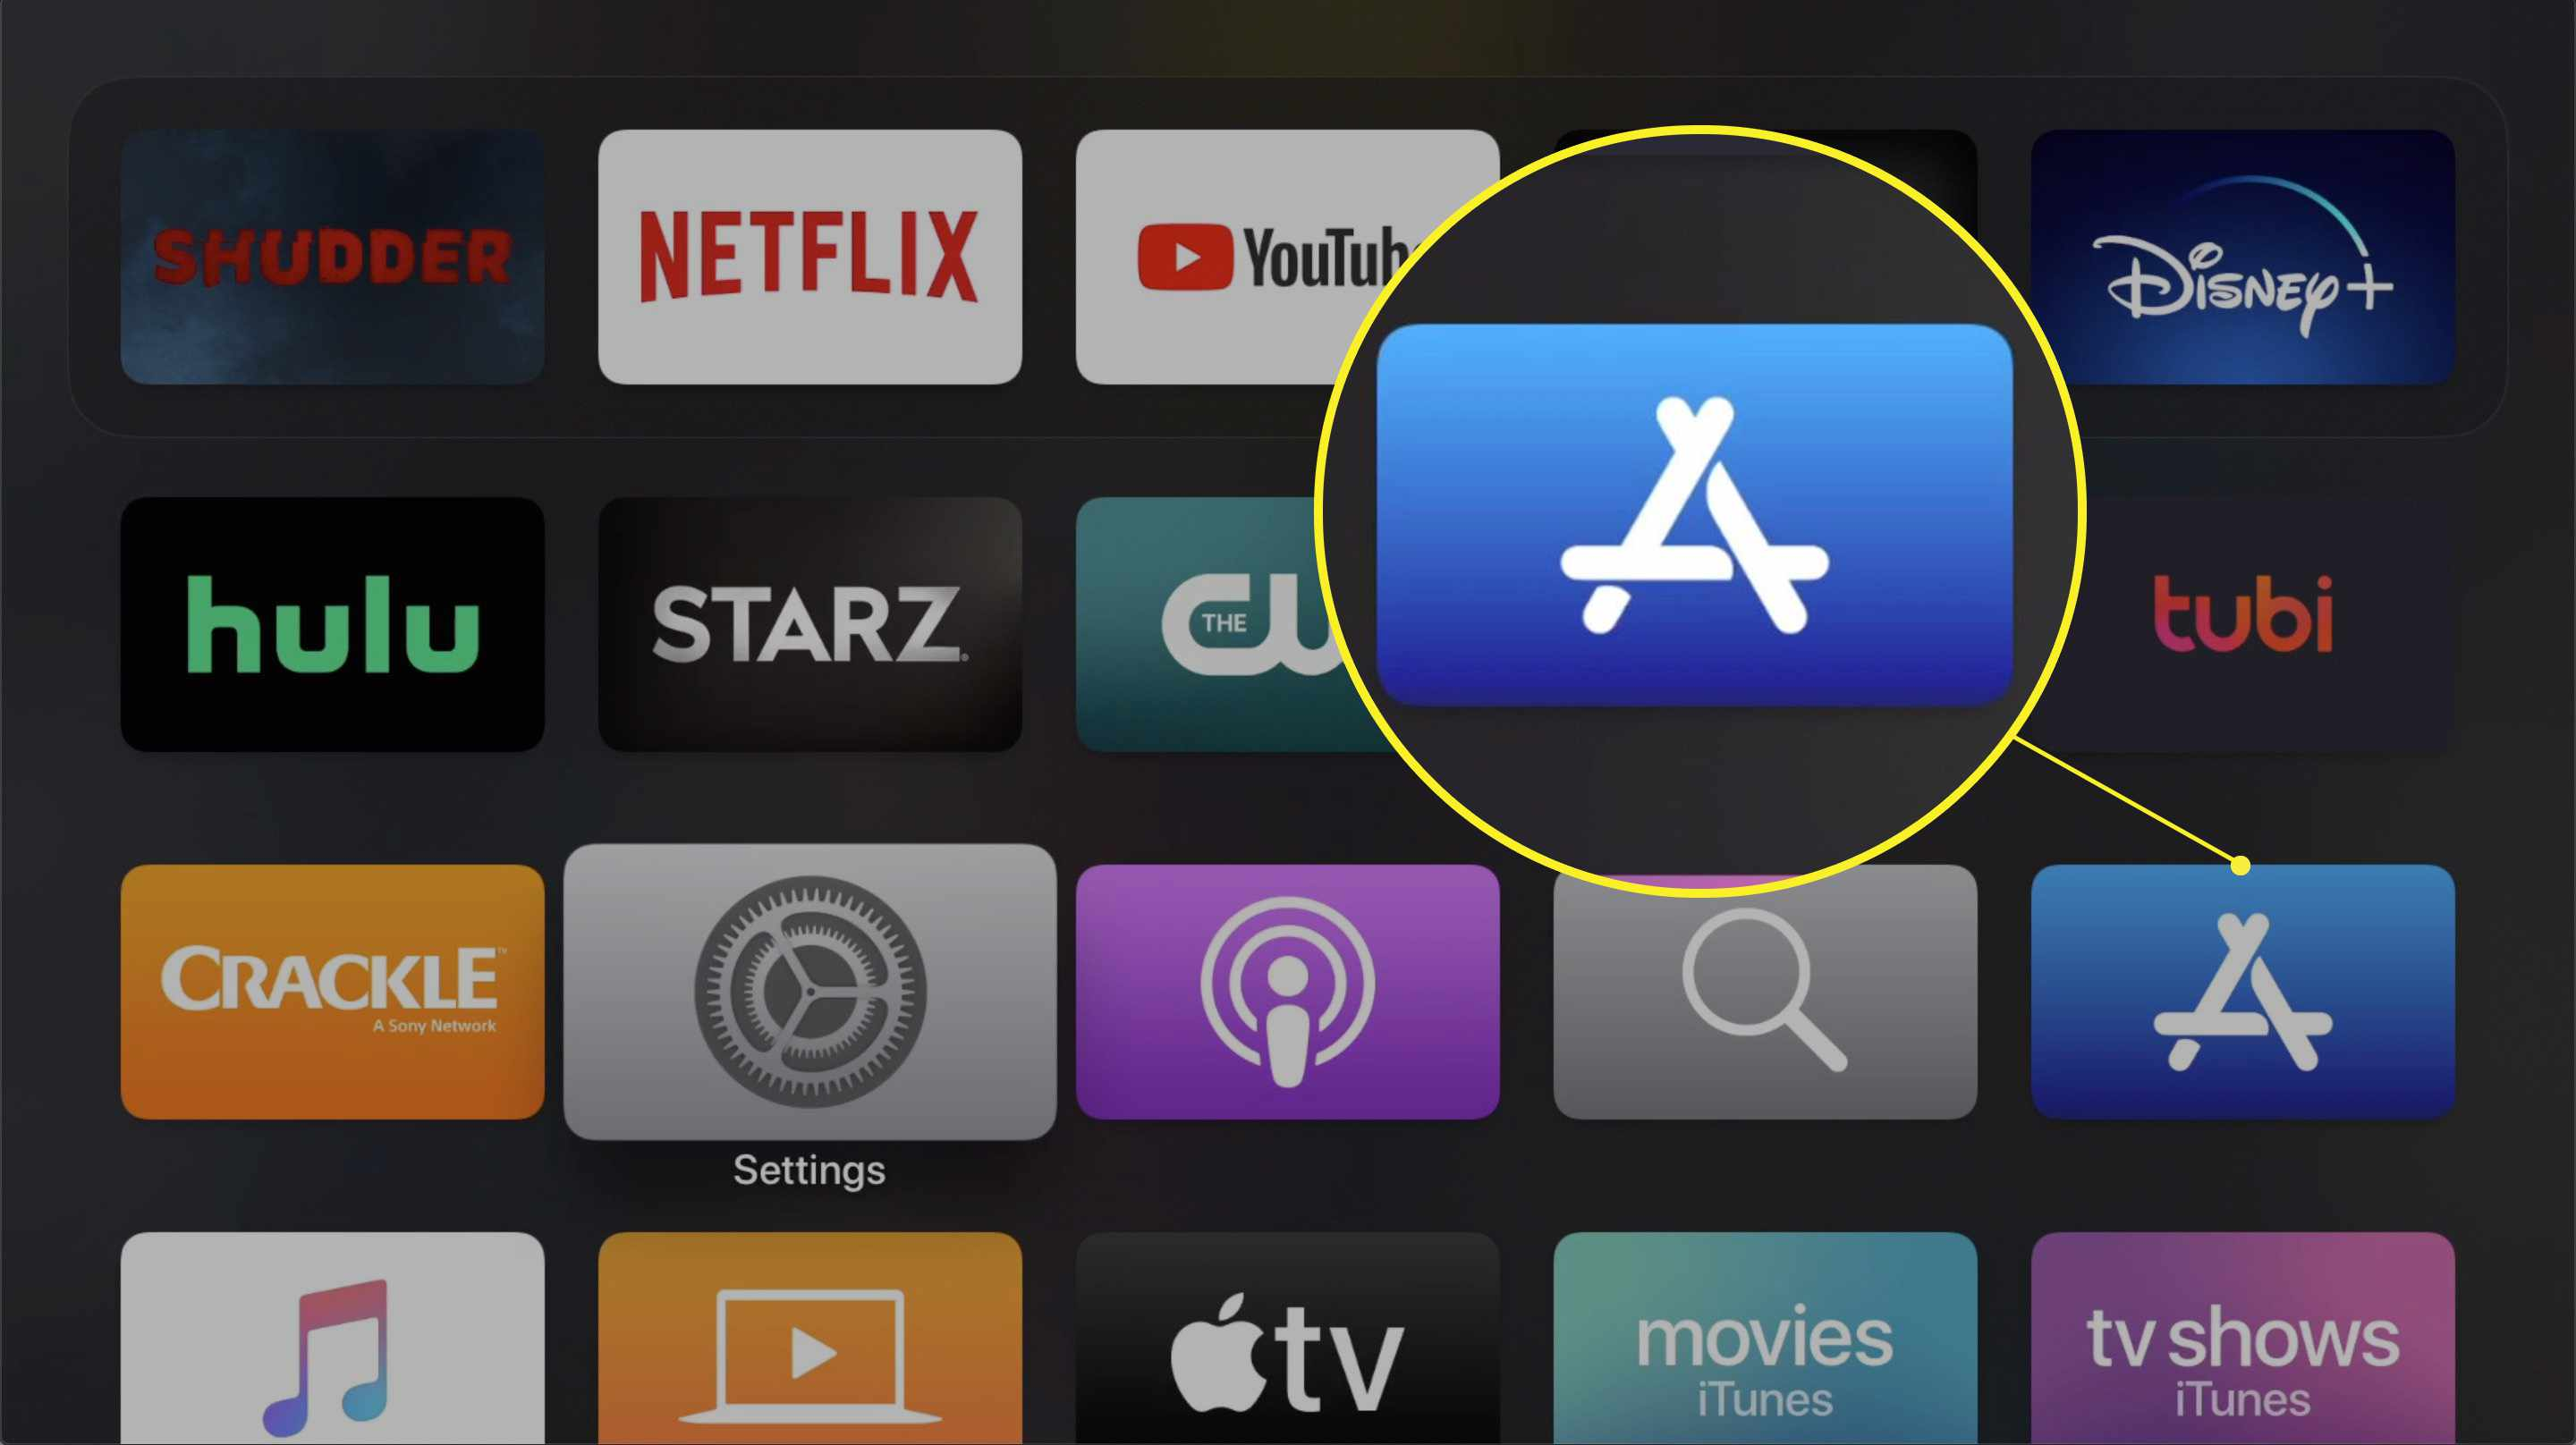 Apple TV main menu showing the App Store icon